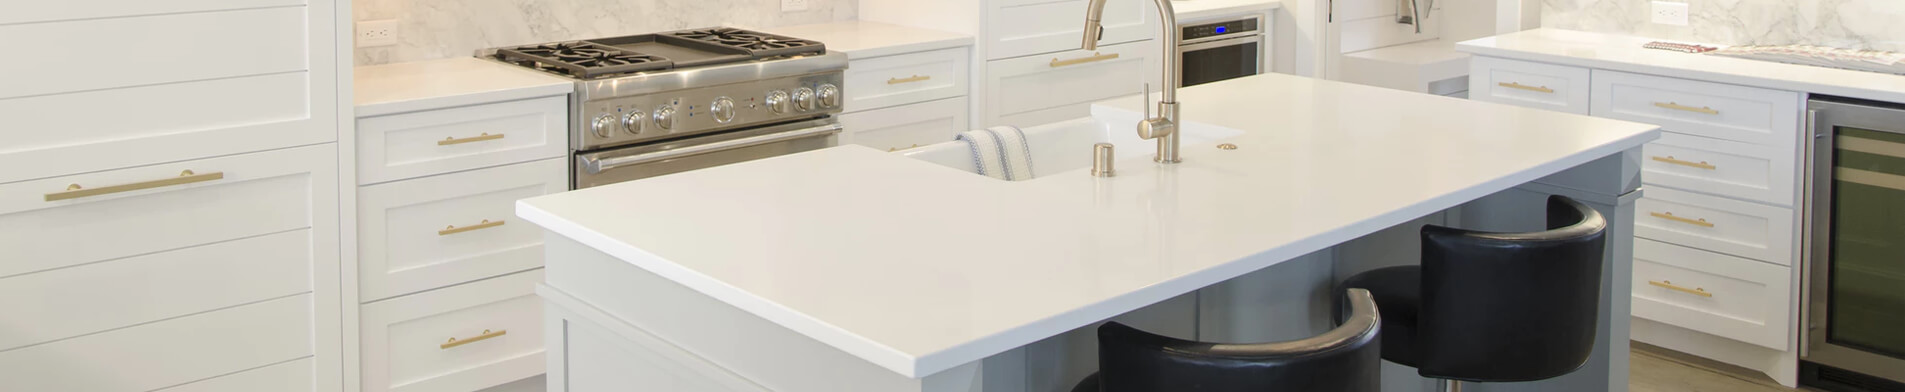 How To Care For Granite Countertops Granite Shop